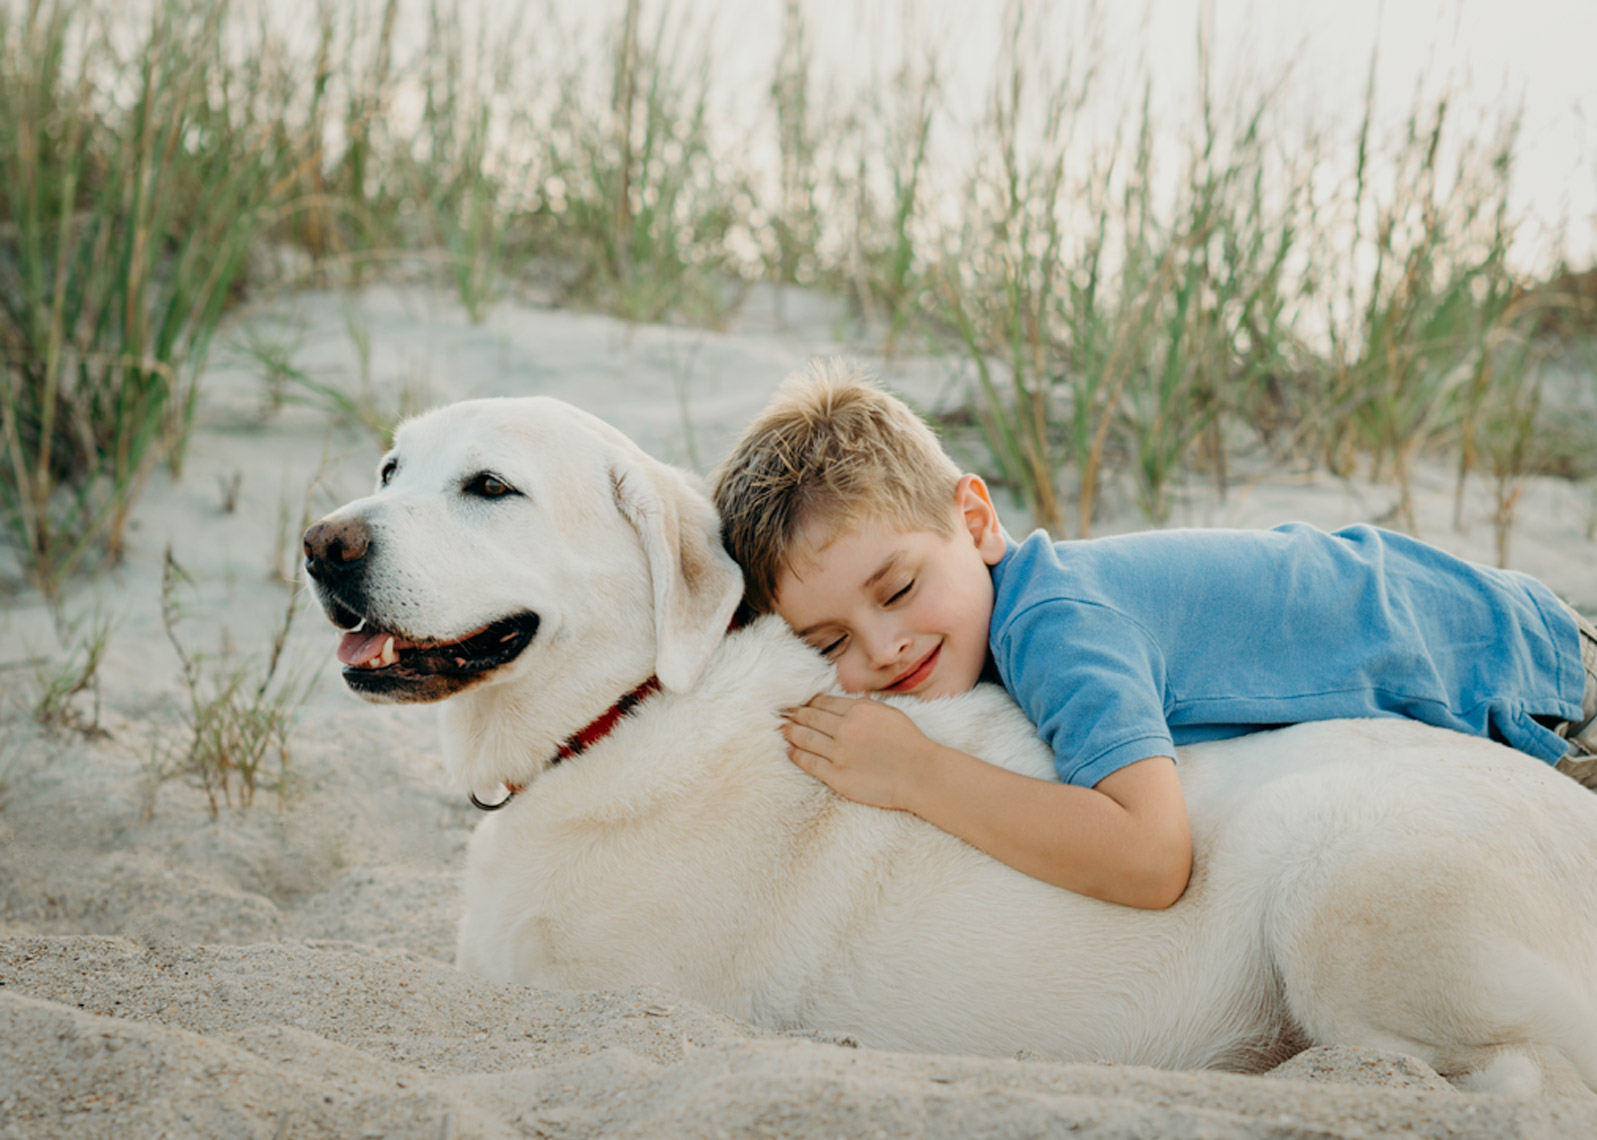 Little-Boy-Hugging-Dog-On-Beach